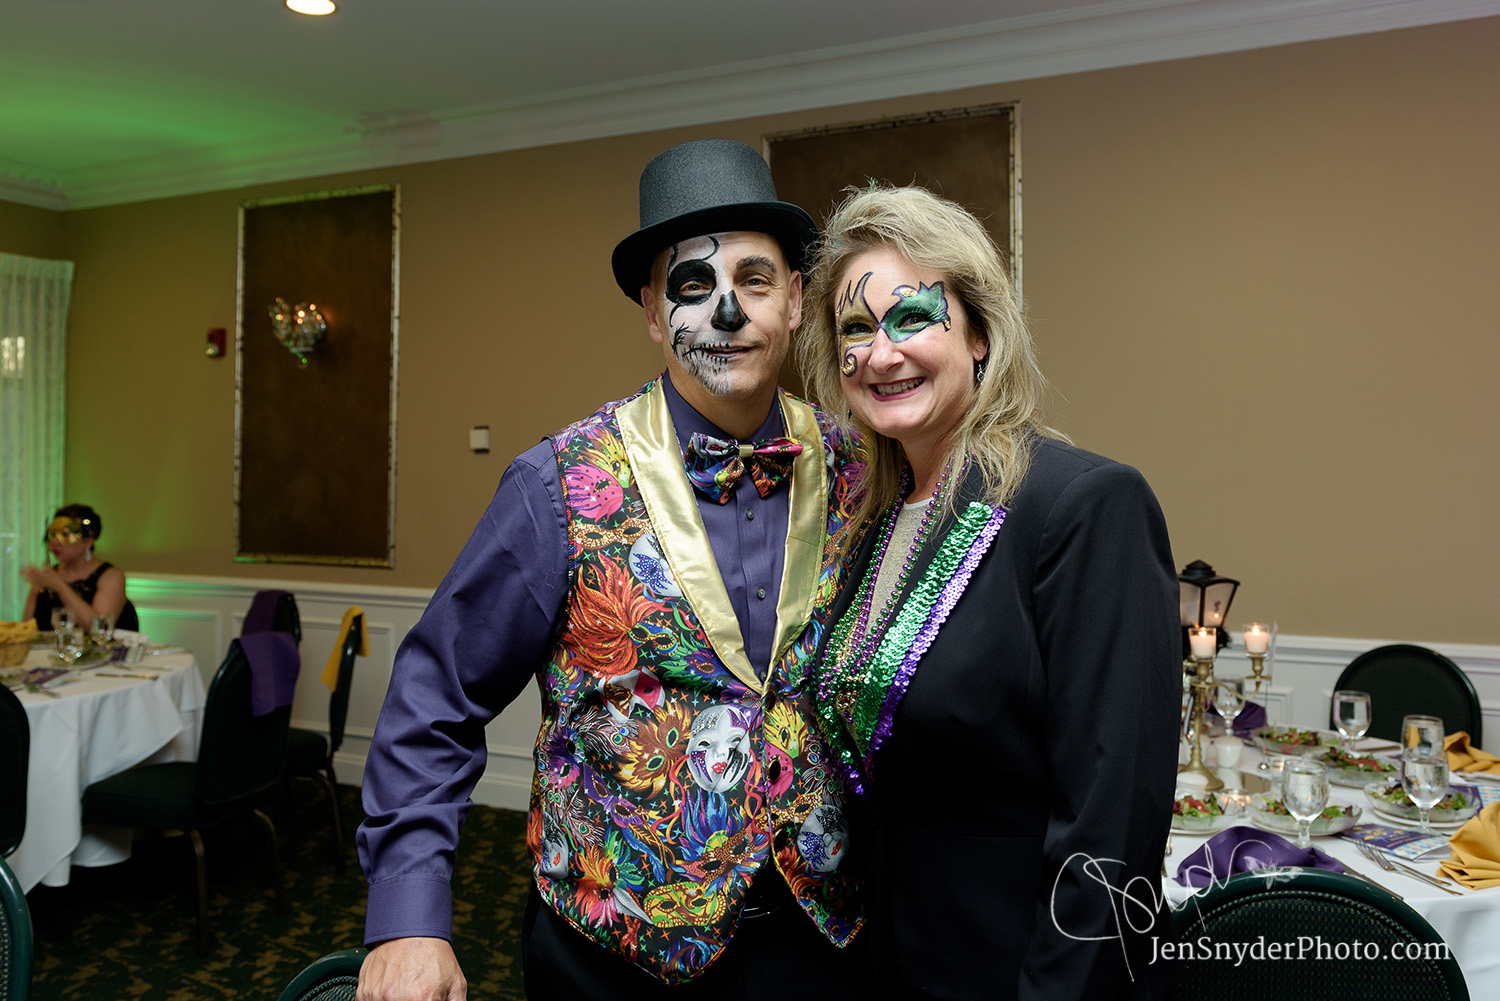 Harford County professional photographer Jen Snyder blogs about SARC's Balloon glow fundraiser gala, to help transform domestic violence victims into thriving survivors. http://www.jensnyderphoto.com